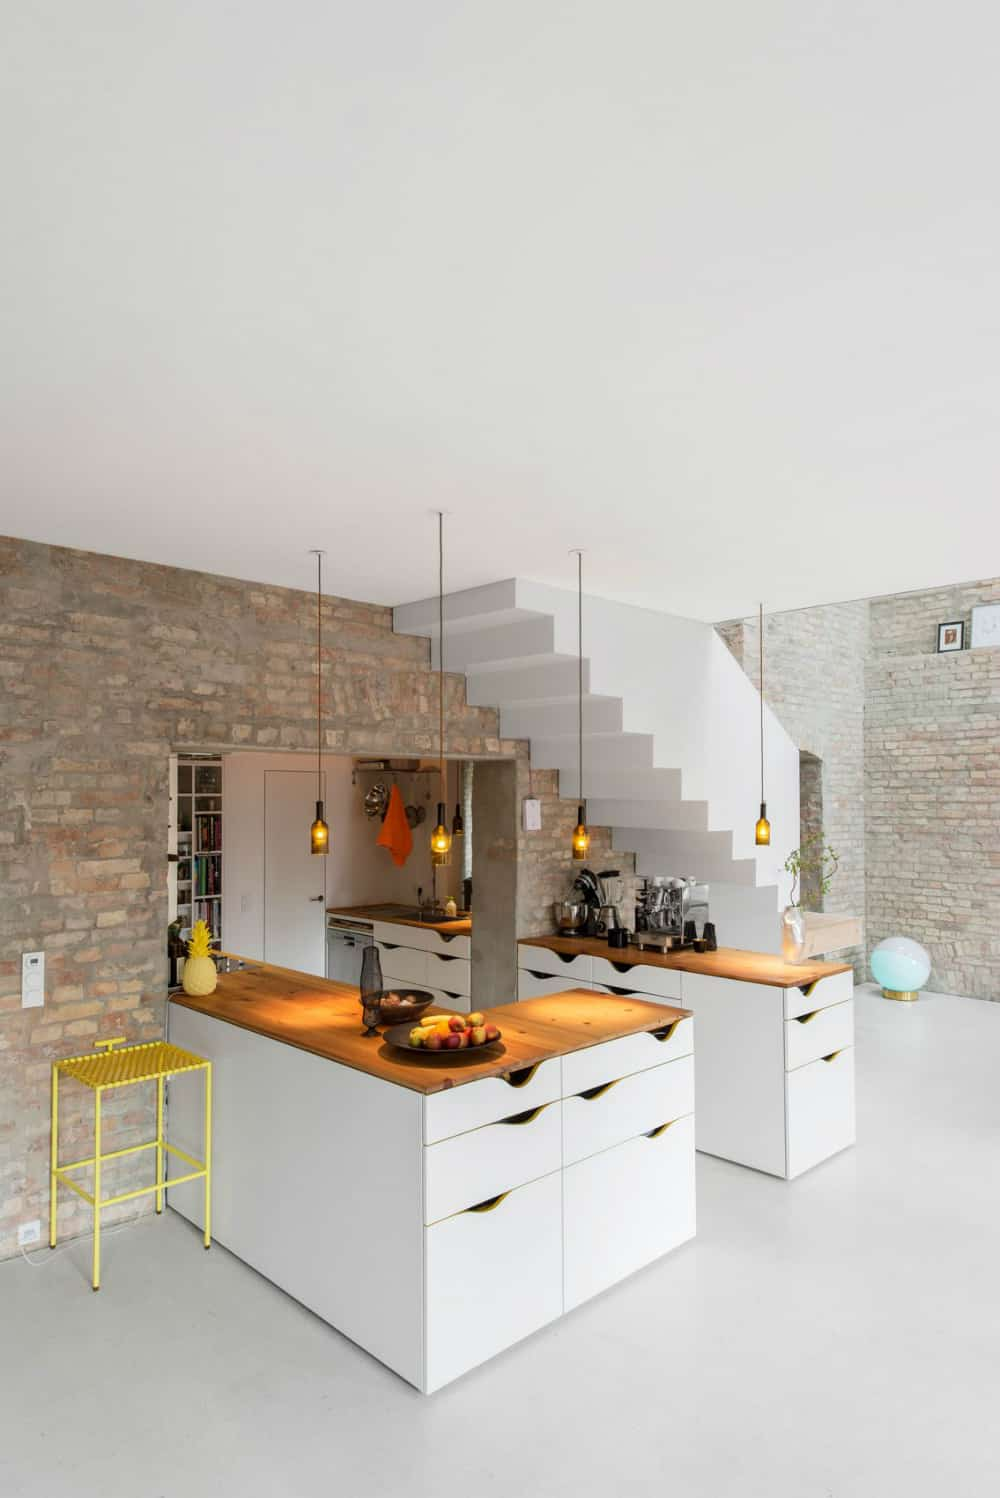 The kitchen has an interesting layout protruding inside a wall